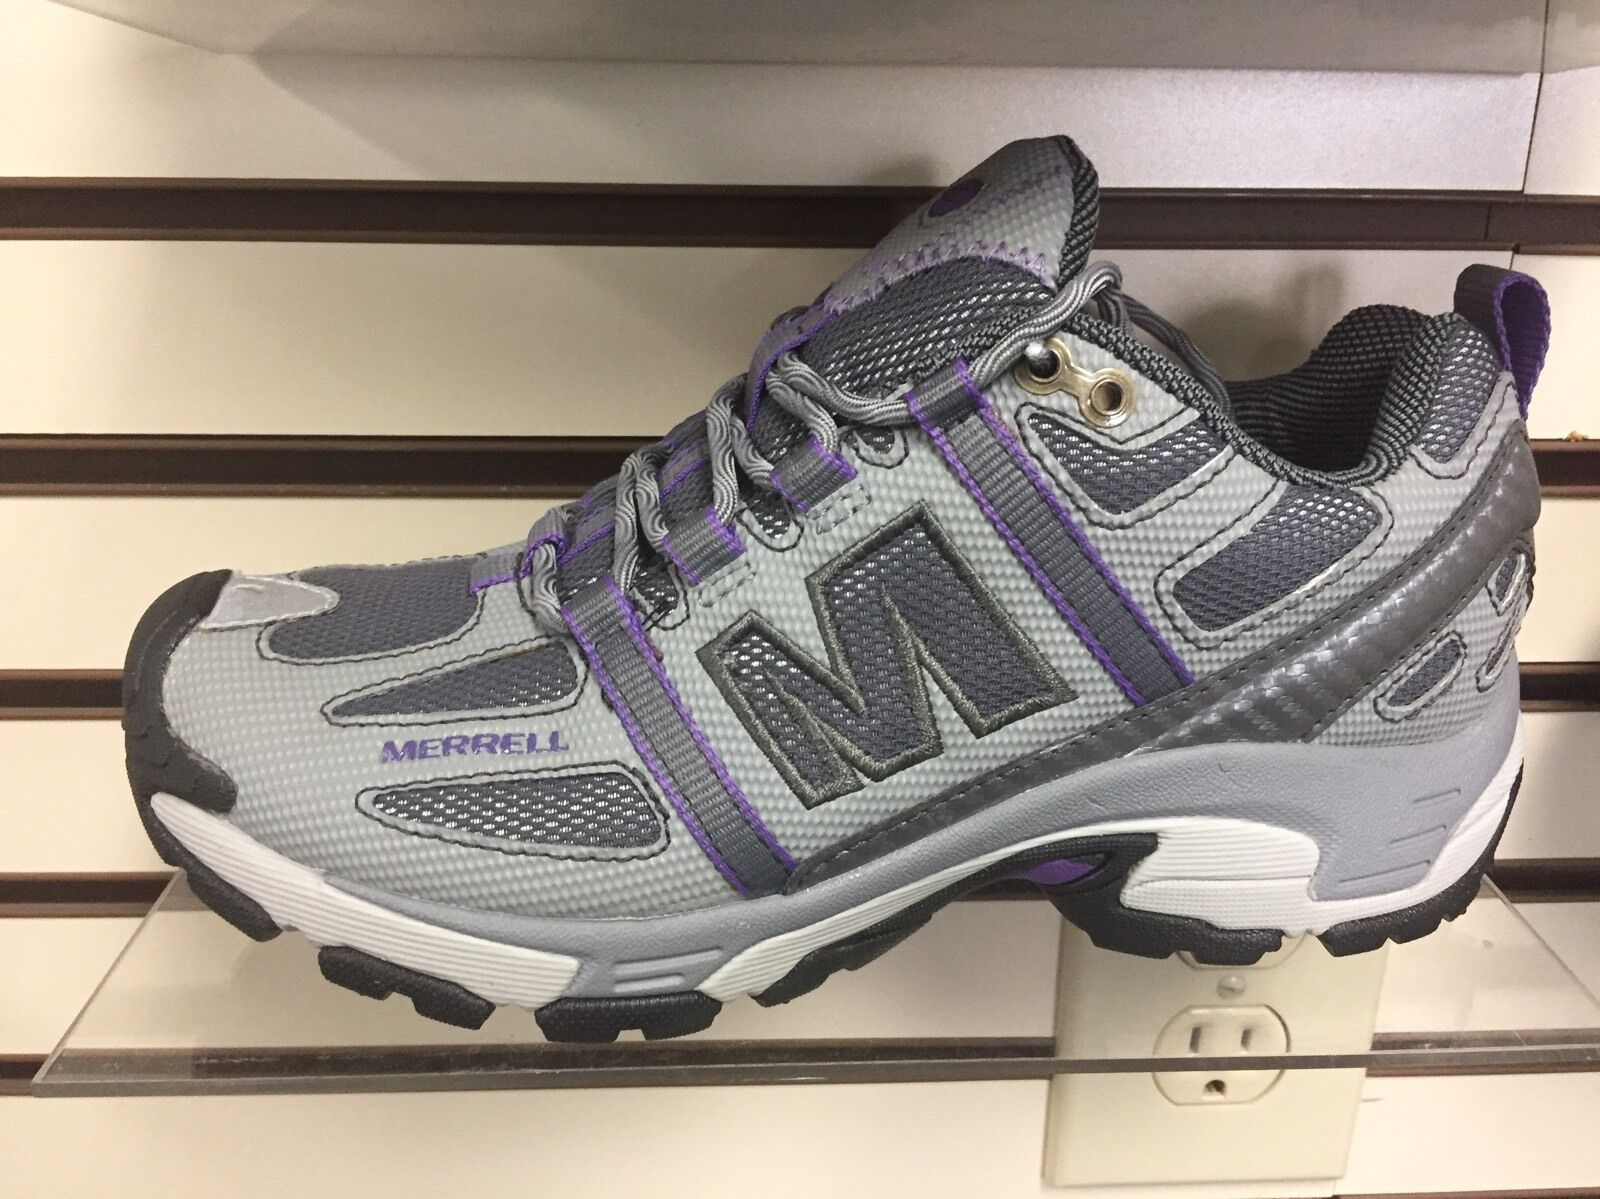 MERRELL Excel Grid WOMEN'S TRAIL RUNNING SHOES SIZE 6 M Smoke/purple Heart